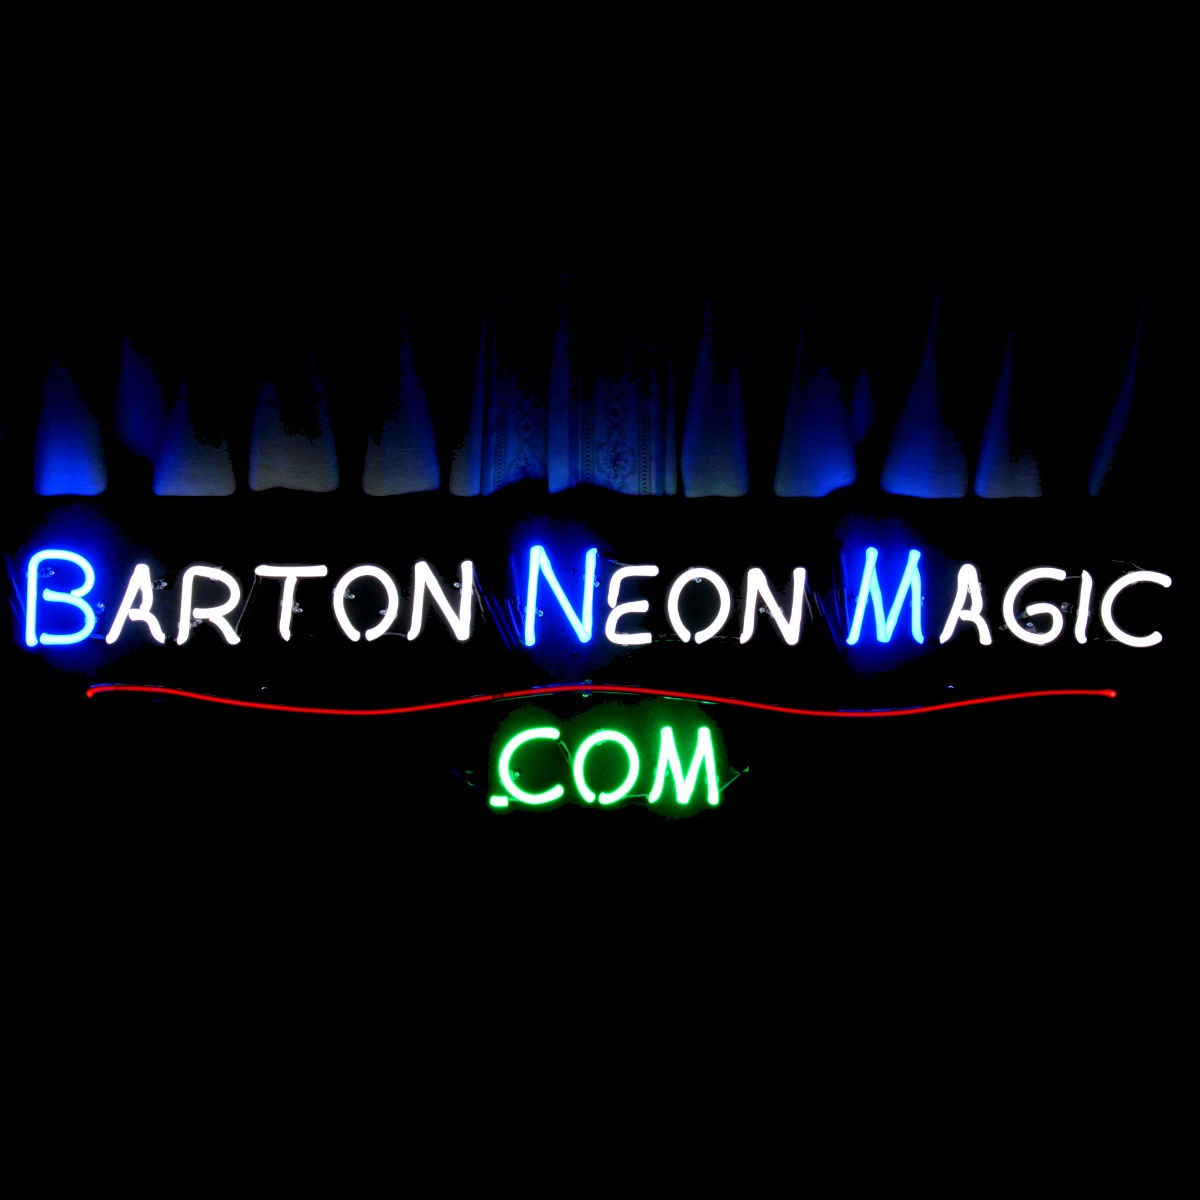 Designer Hand-blown Neon Lighting by John Barton - Famous USA Neon Glass Artist - BartonNeonMagic.com